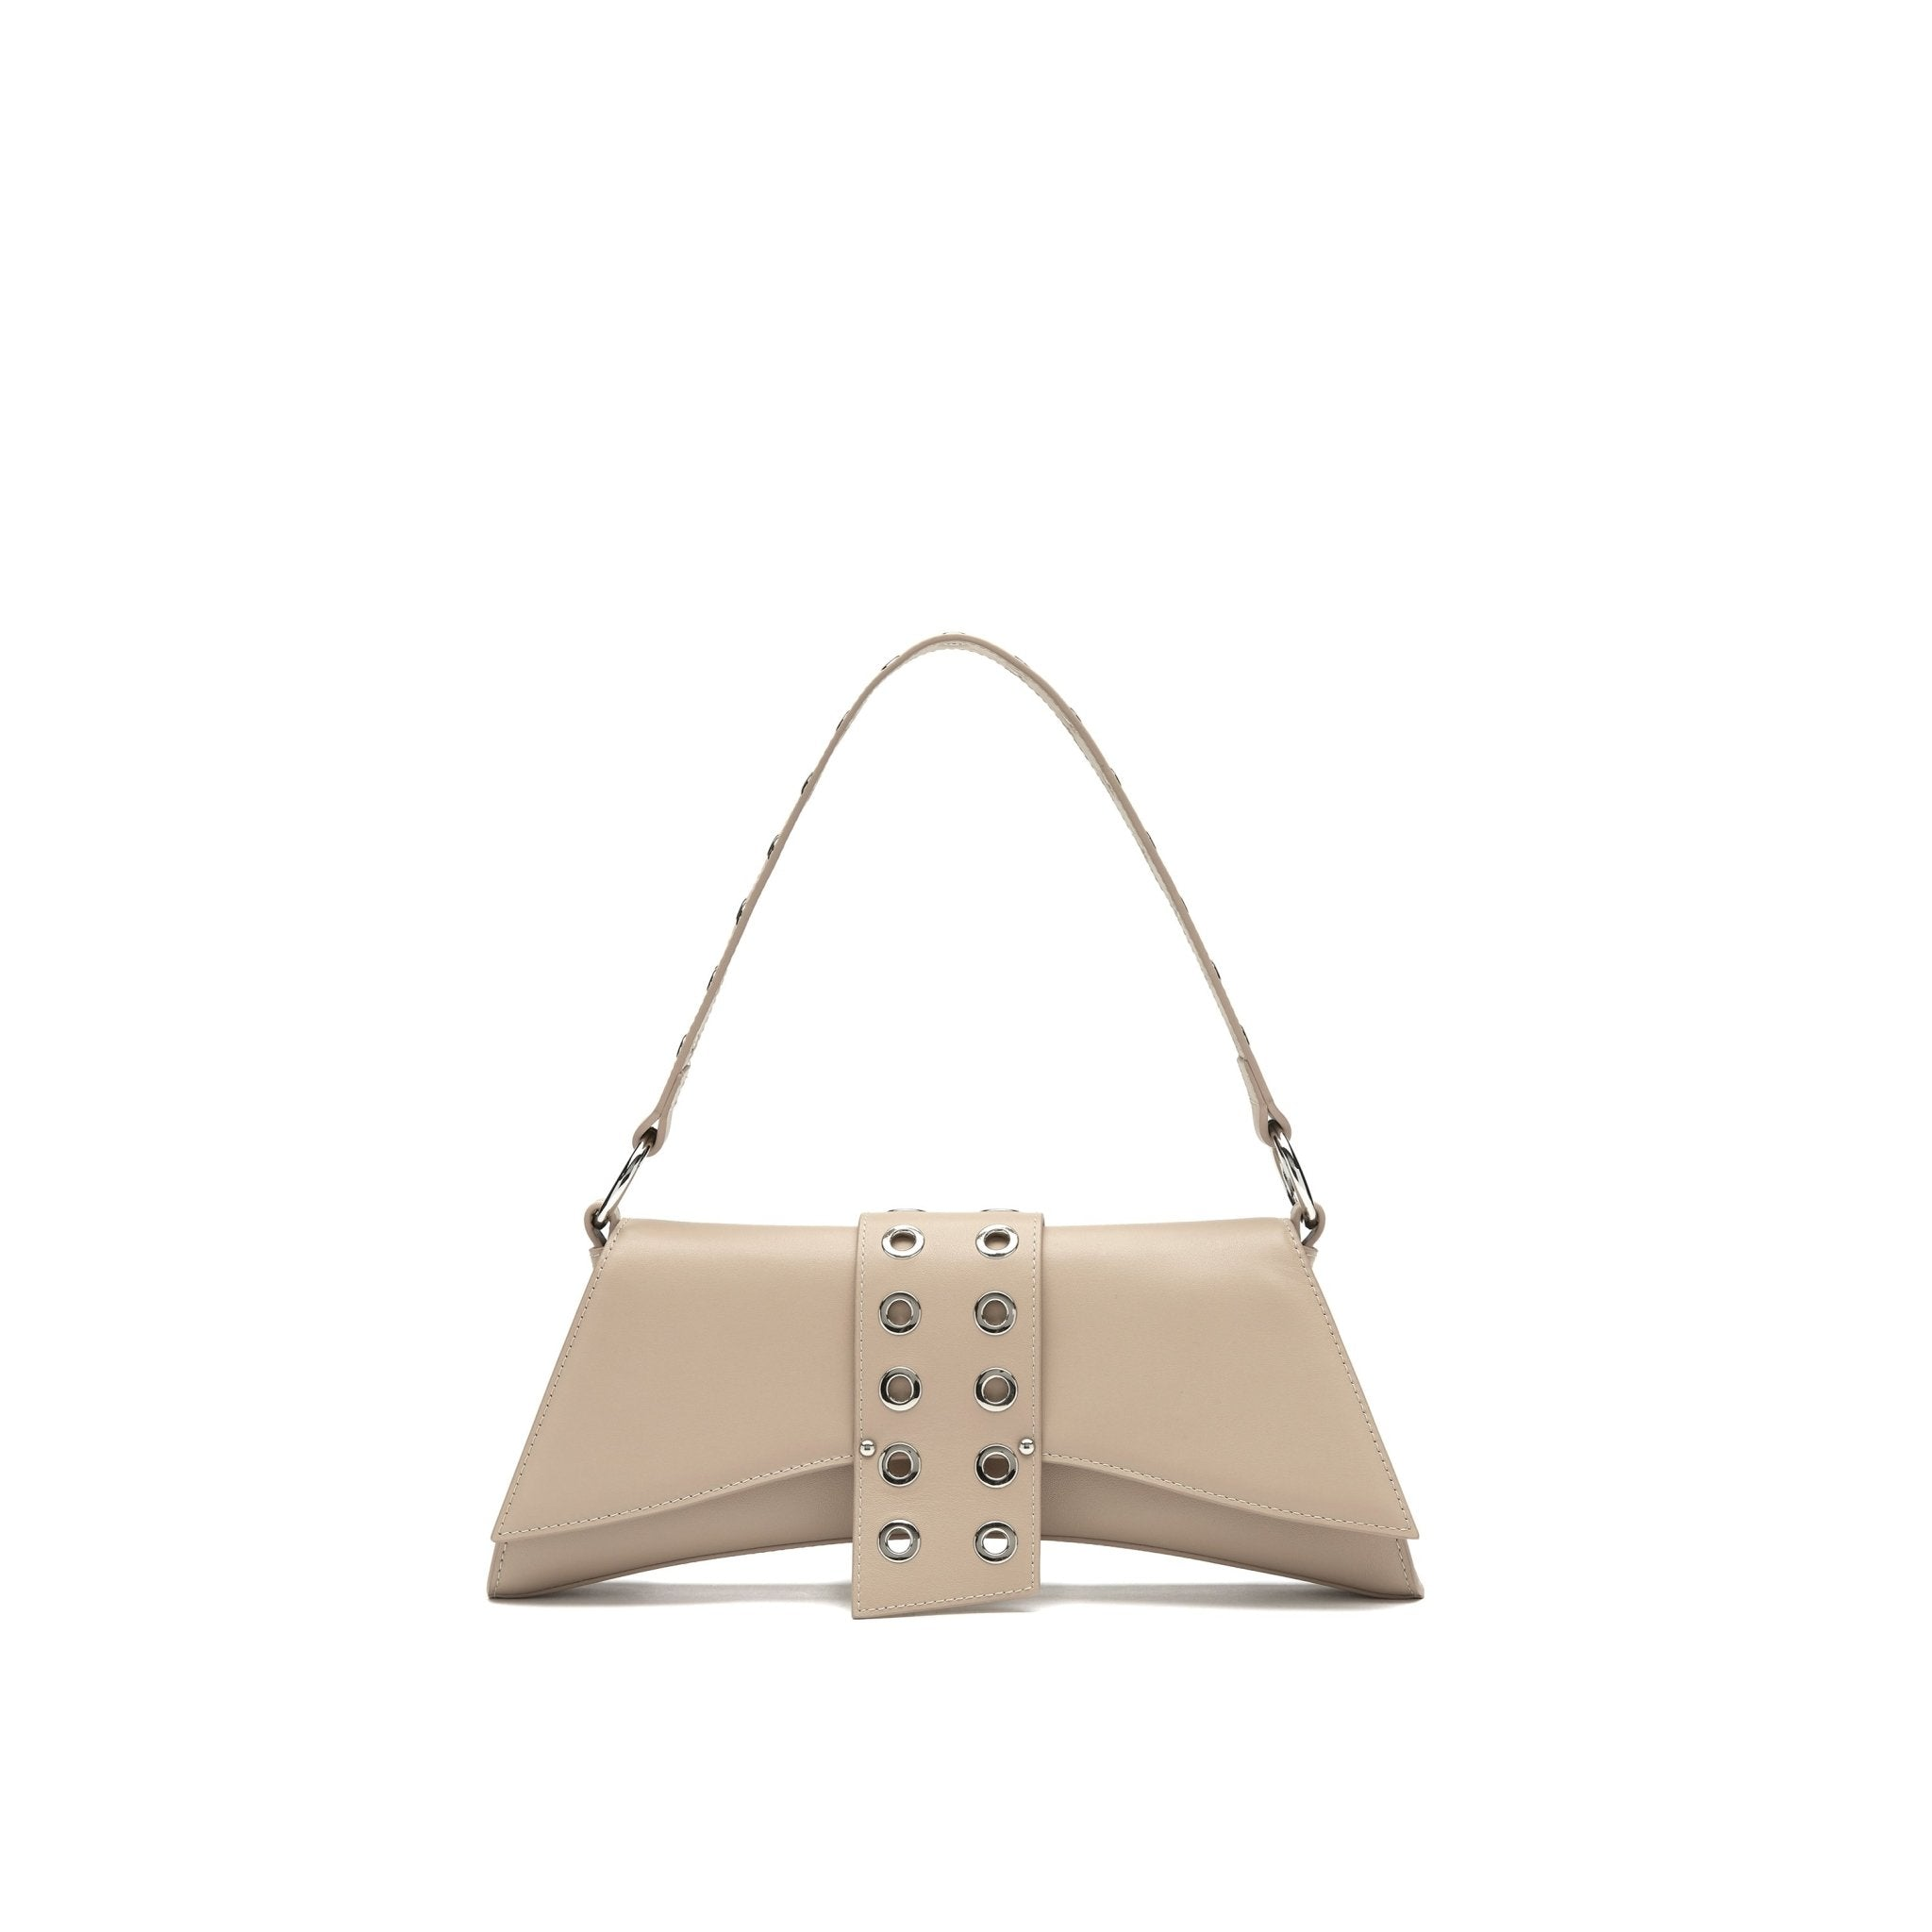 LOST IN ECHO Beige Barrett Metal Chain Shoulder Bag Large | MADA IN CHINA